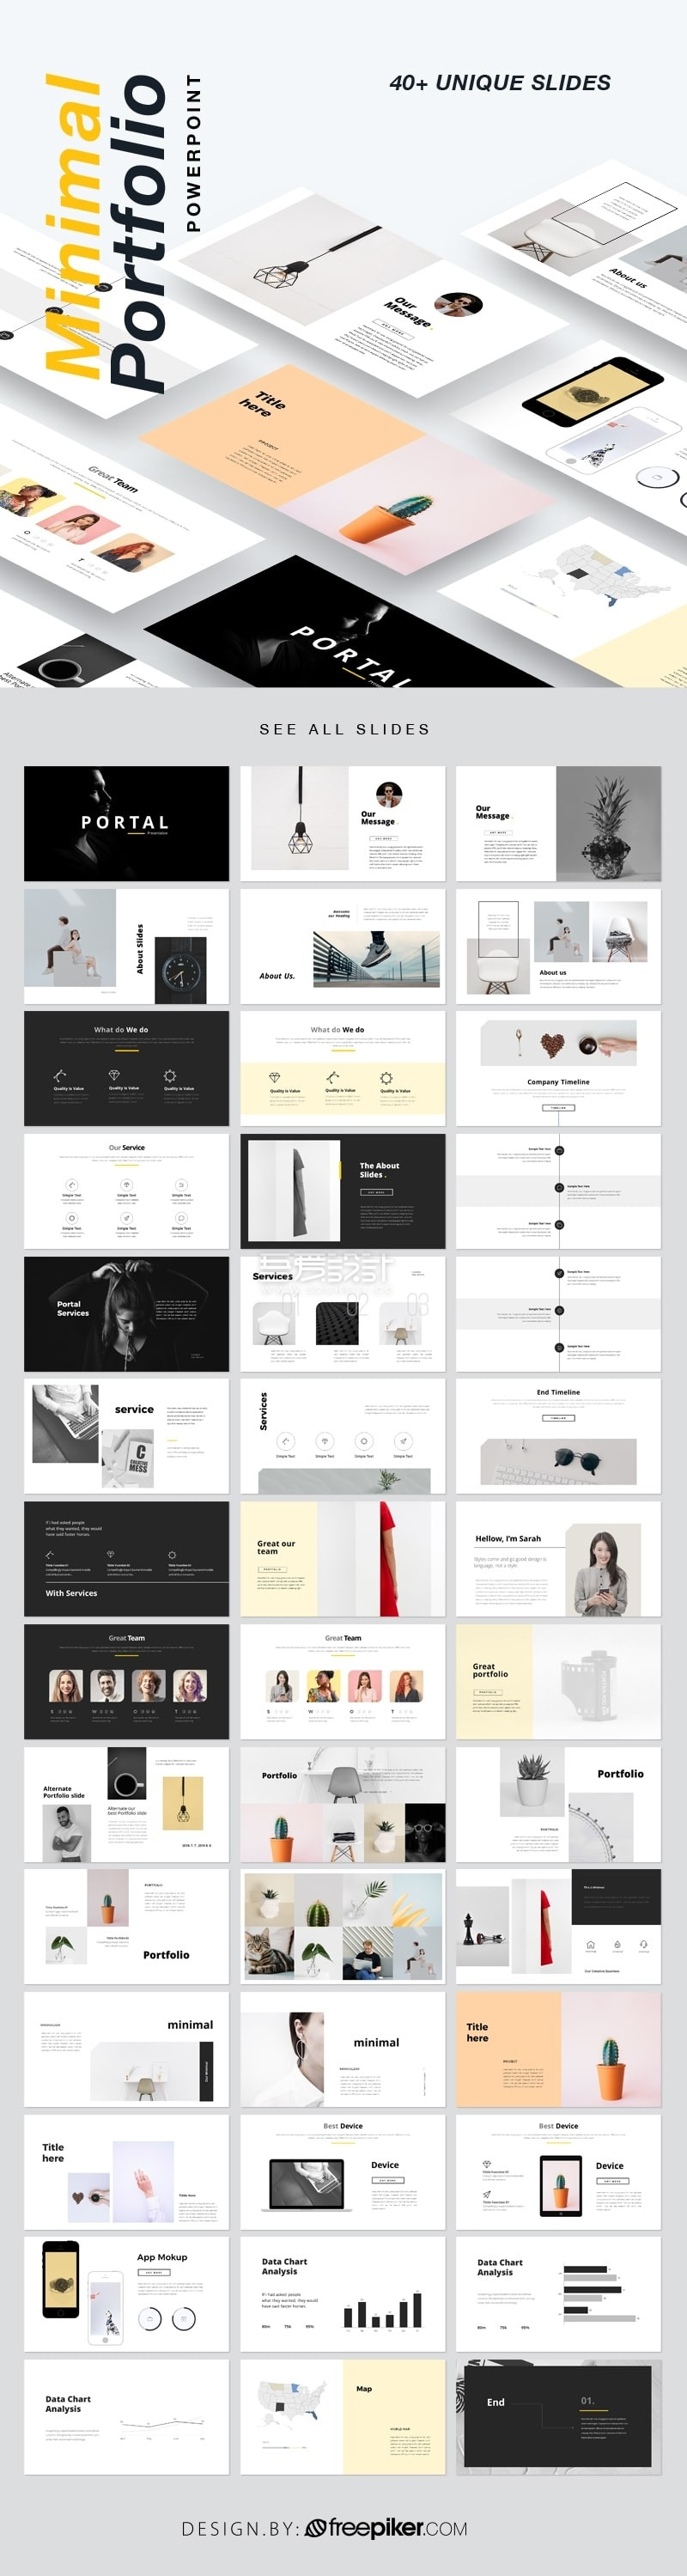 portfolio-minimal-powerpoint-1626-preview